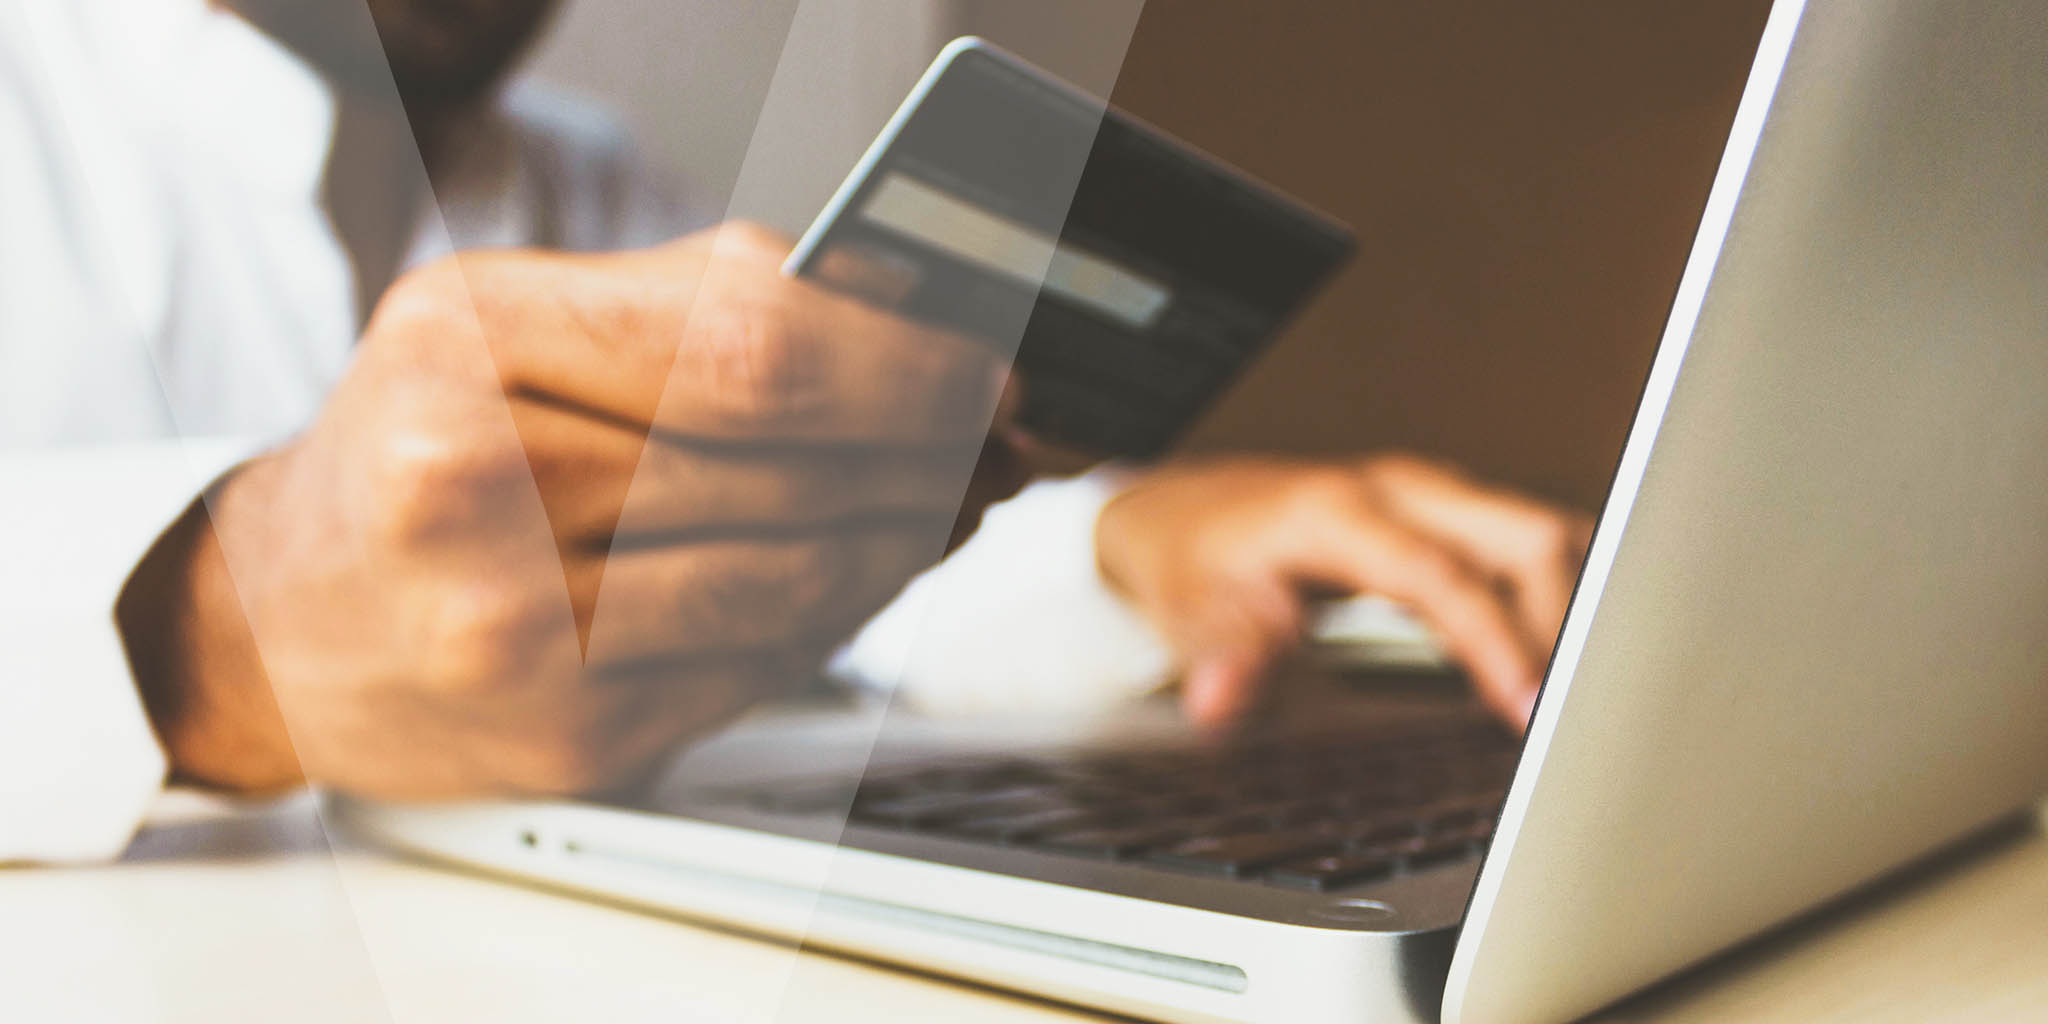 A person using their credit card to pay online